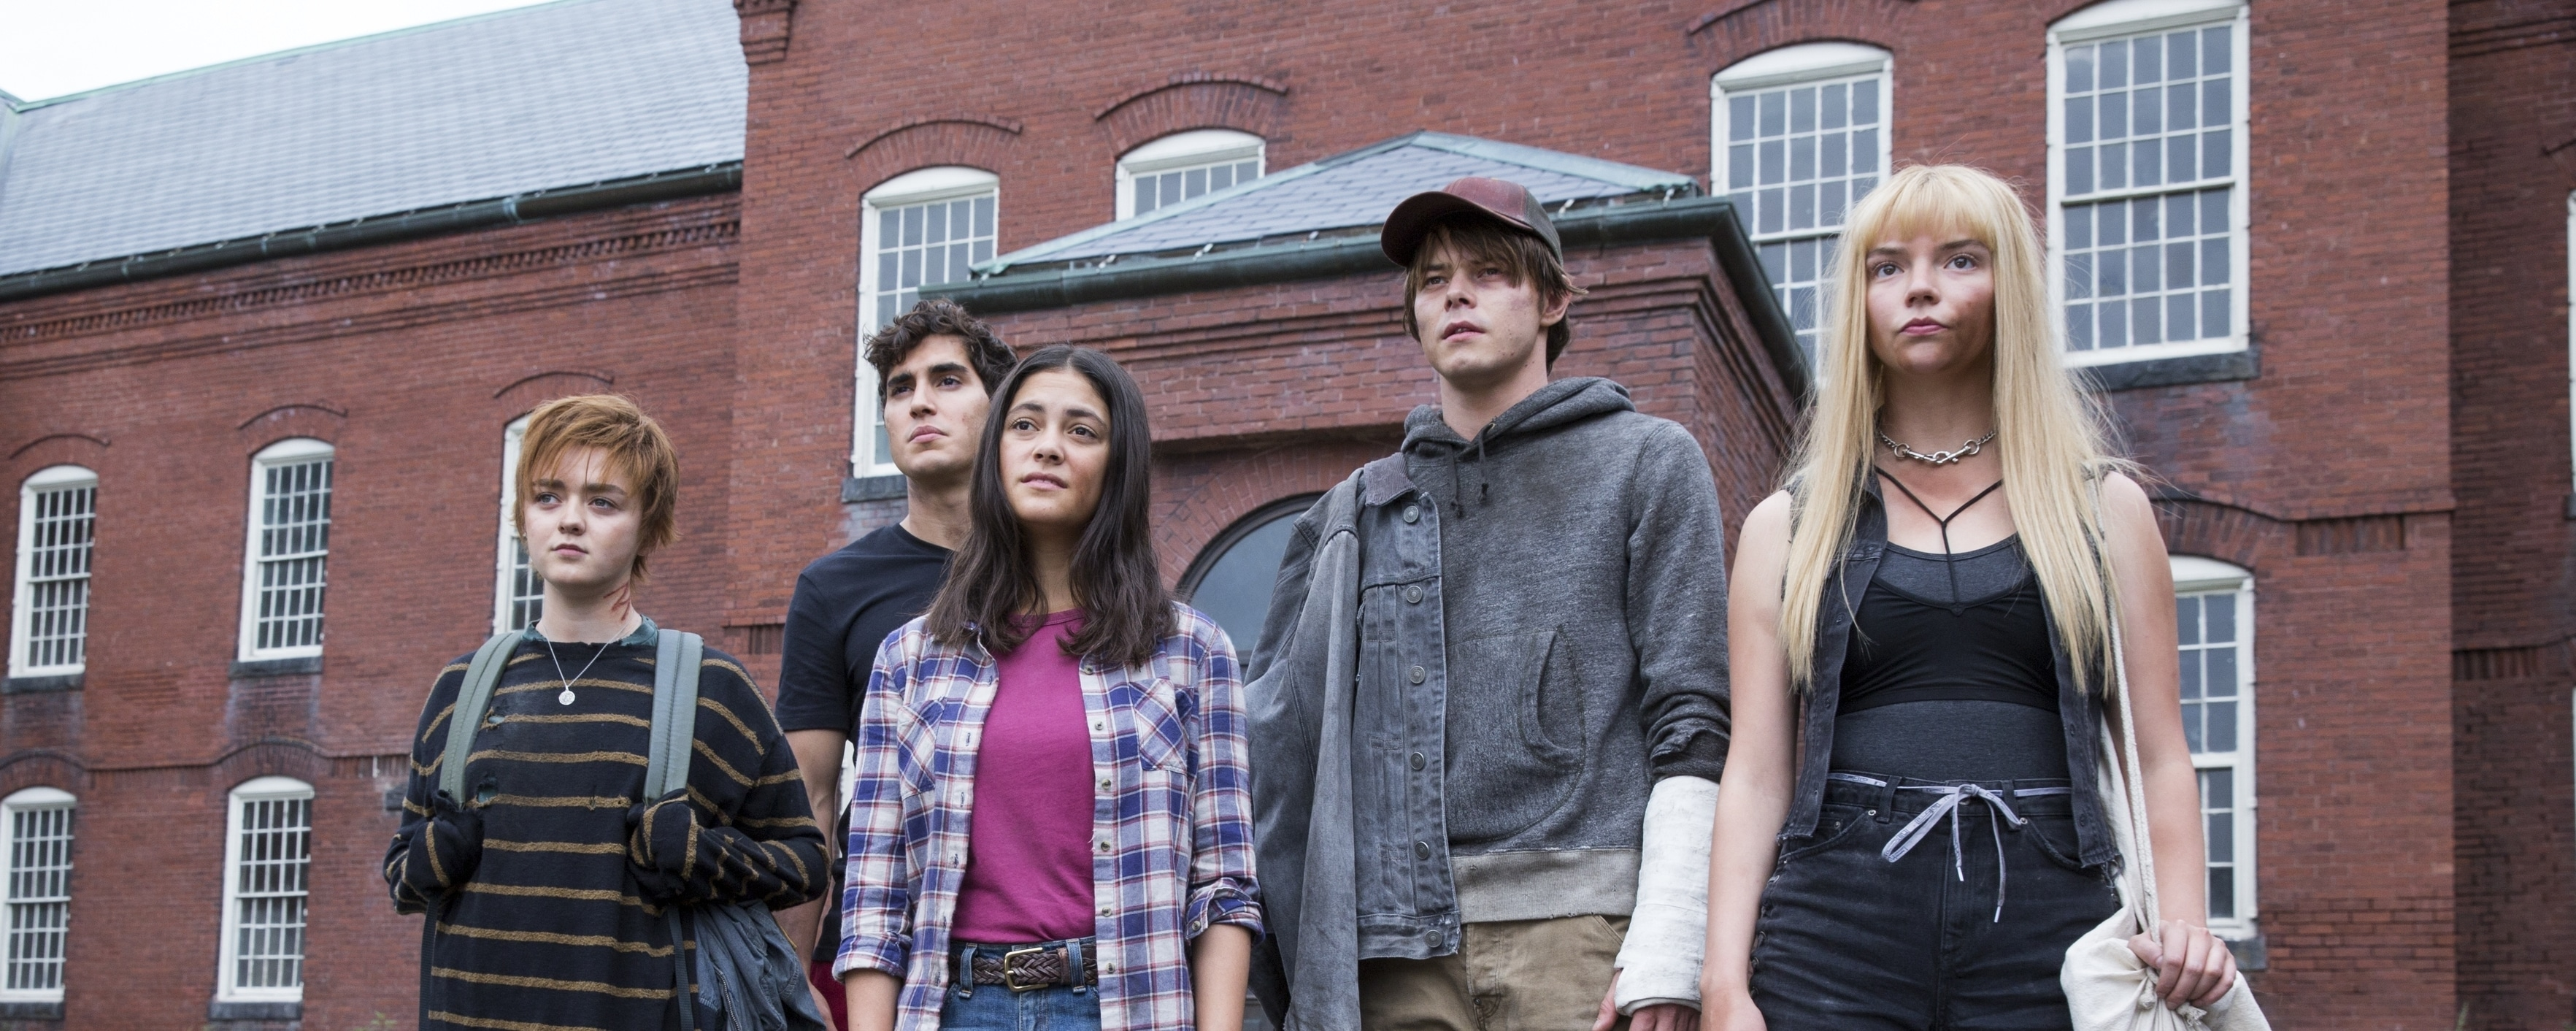 the cast of Marvel's The New Mutants